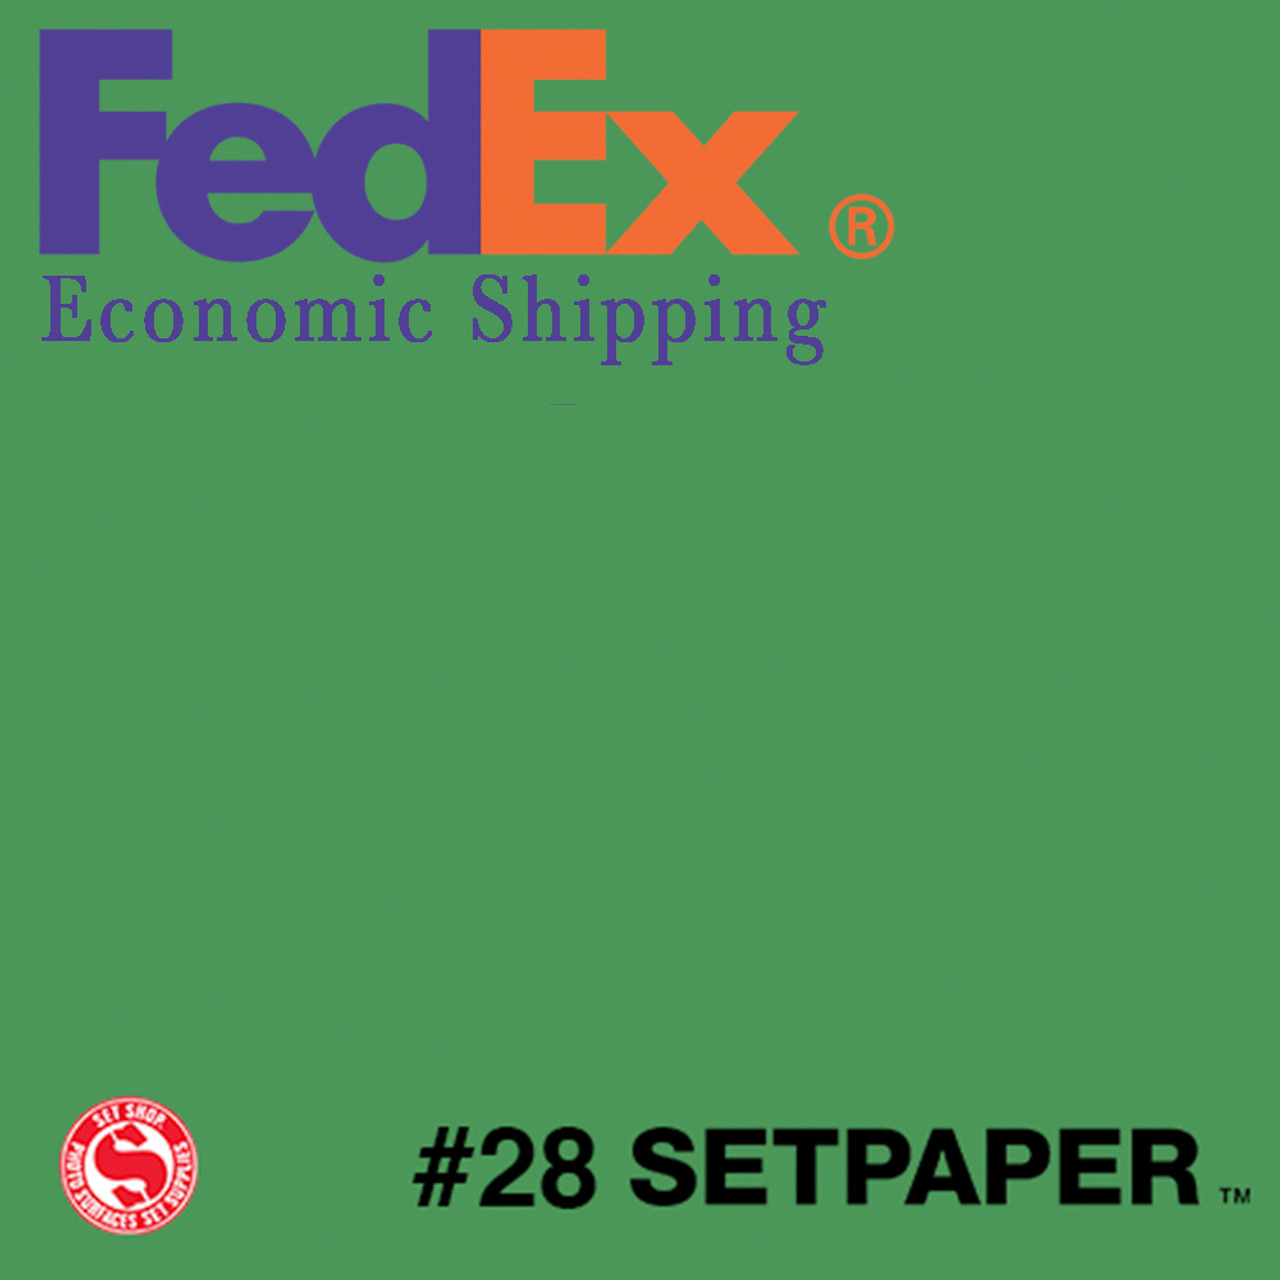 "(ECONOMIC SHIPPING) SETPAPER - BRIGHT GREEN 48"" x 36' (1.3 x 11m)"